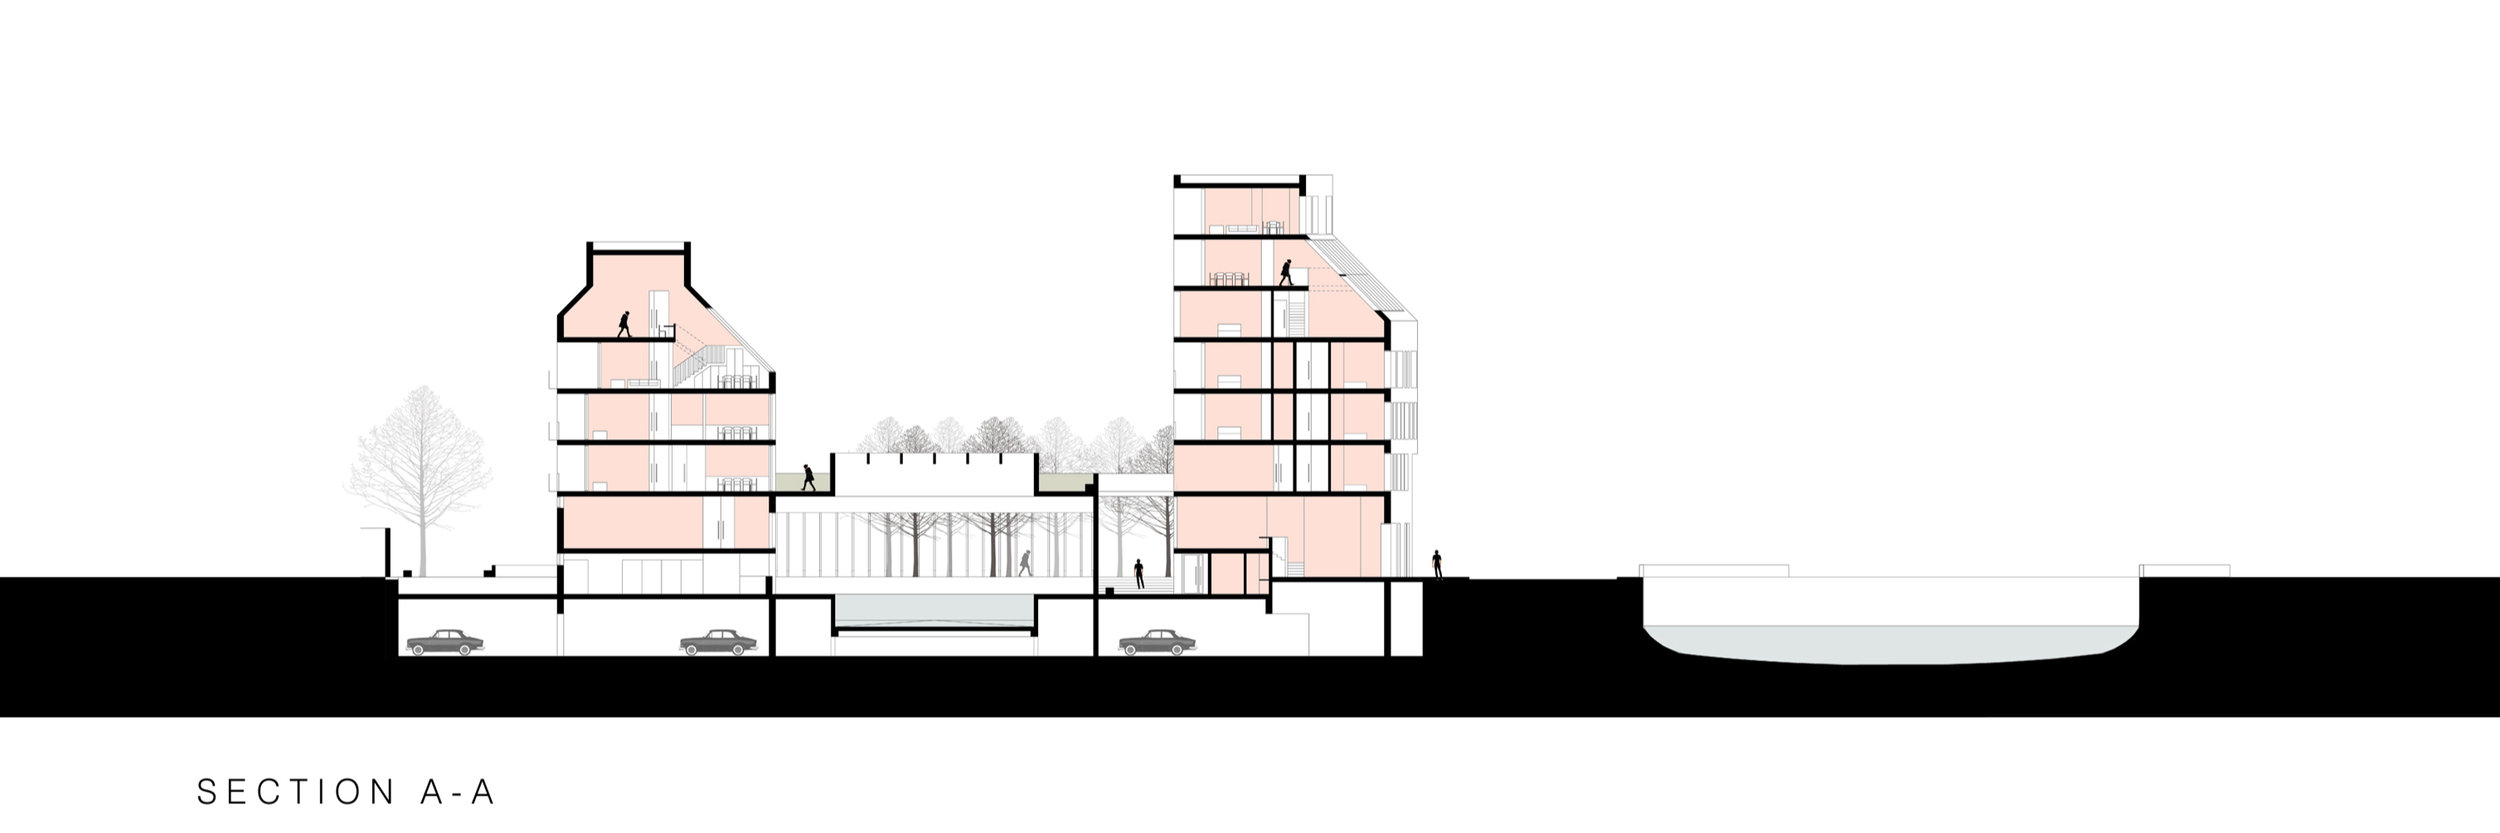 E11 Section AA.jpg